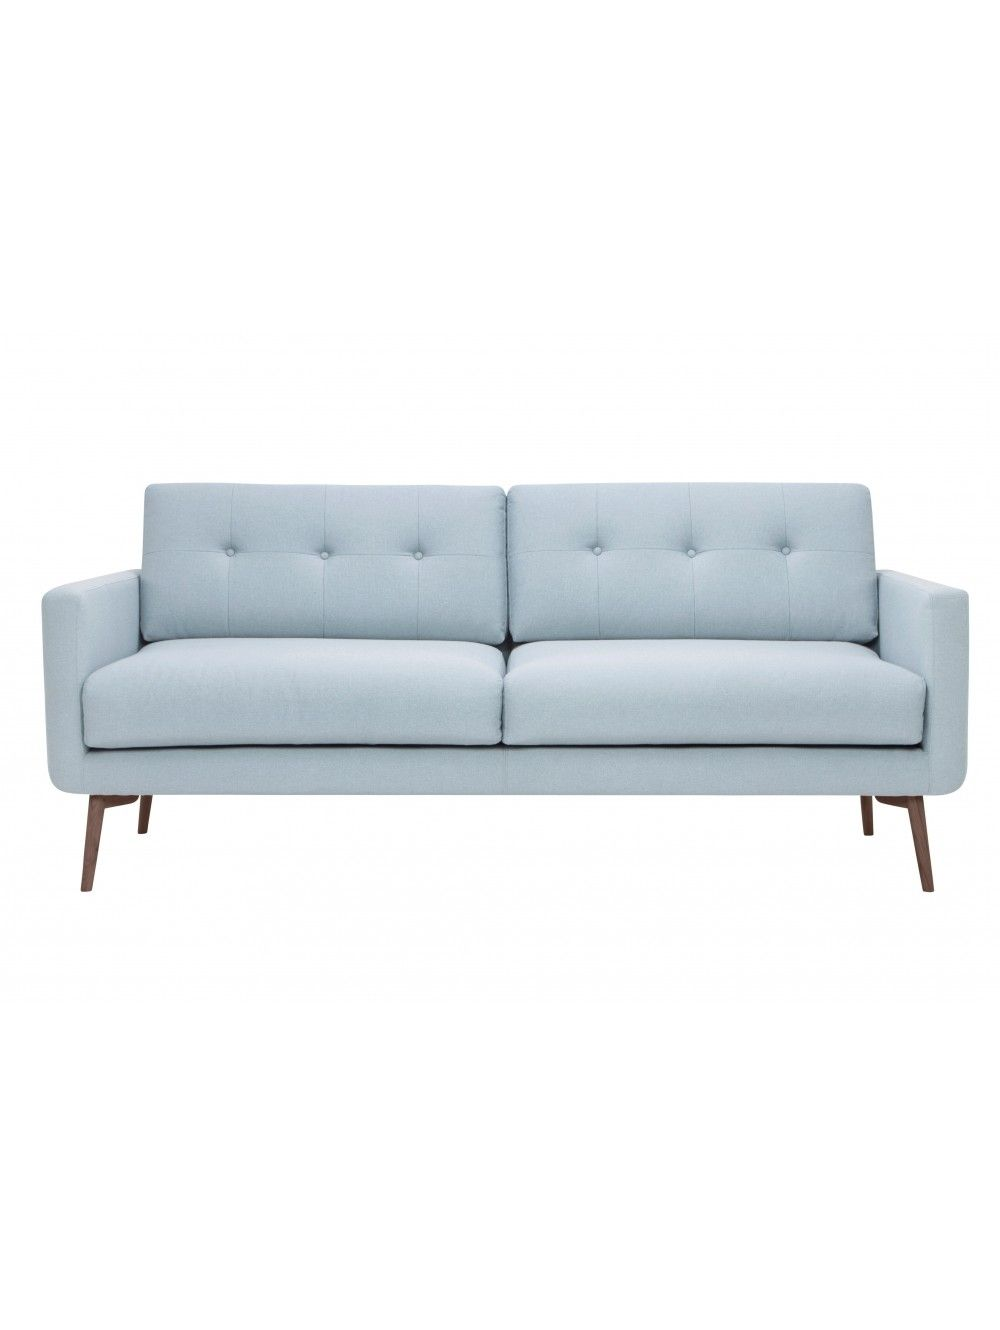 Pamina Sofa Light Blue Modern Sofa Couch Light Blue Couches